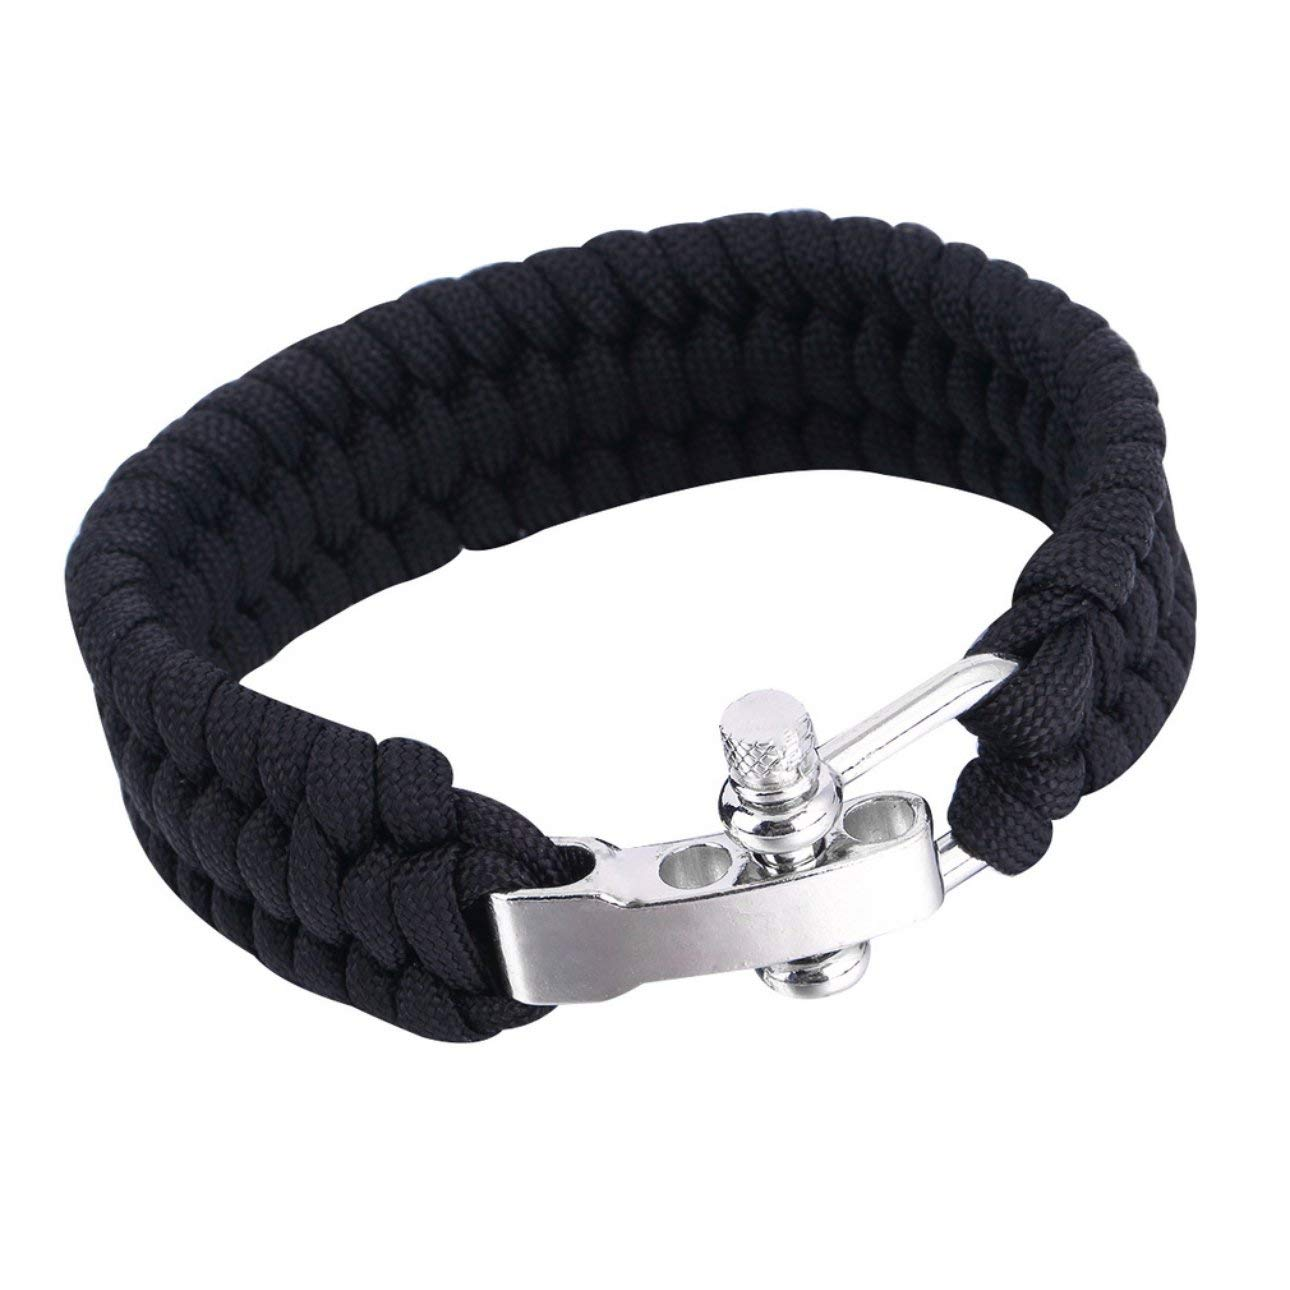 Liobaba Outdoor Survival Paracord Bracelet Camping Self-Rescue Parachute Rope Clasp